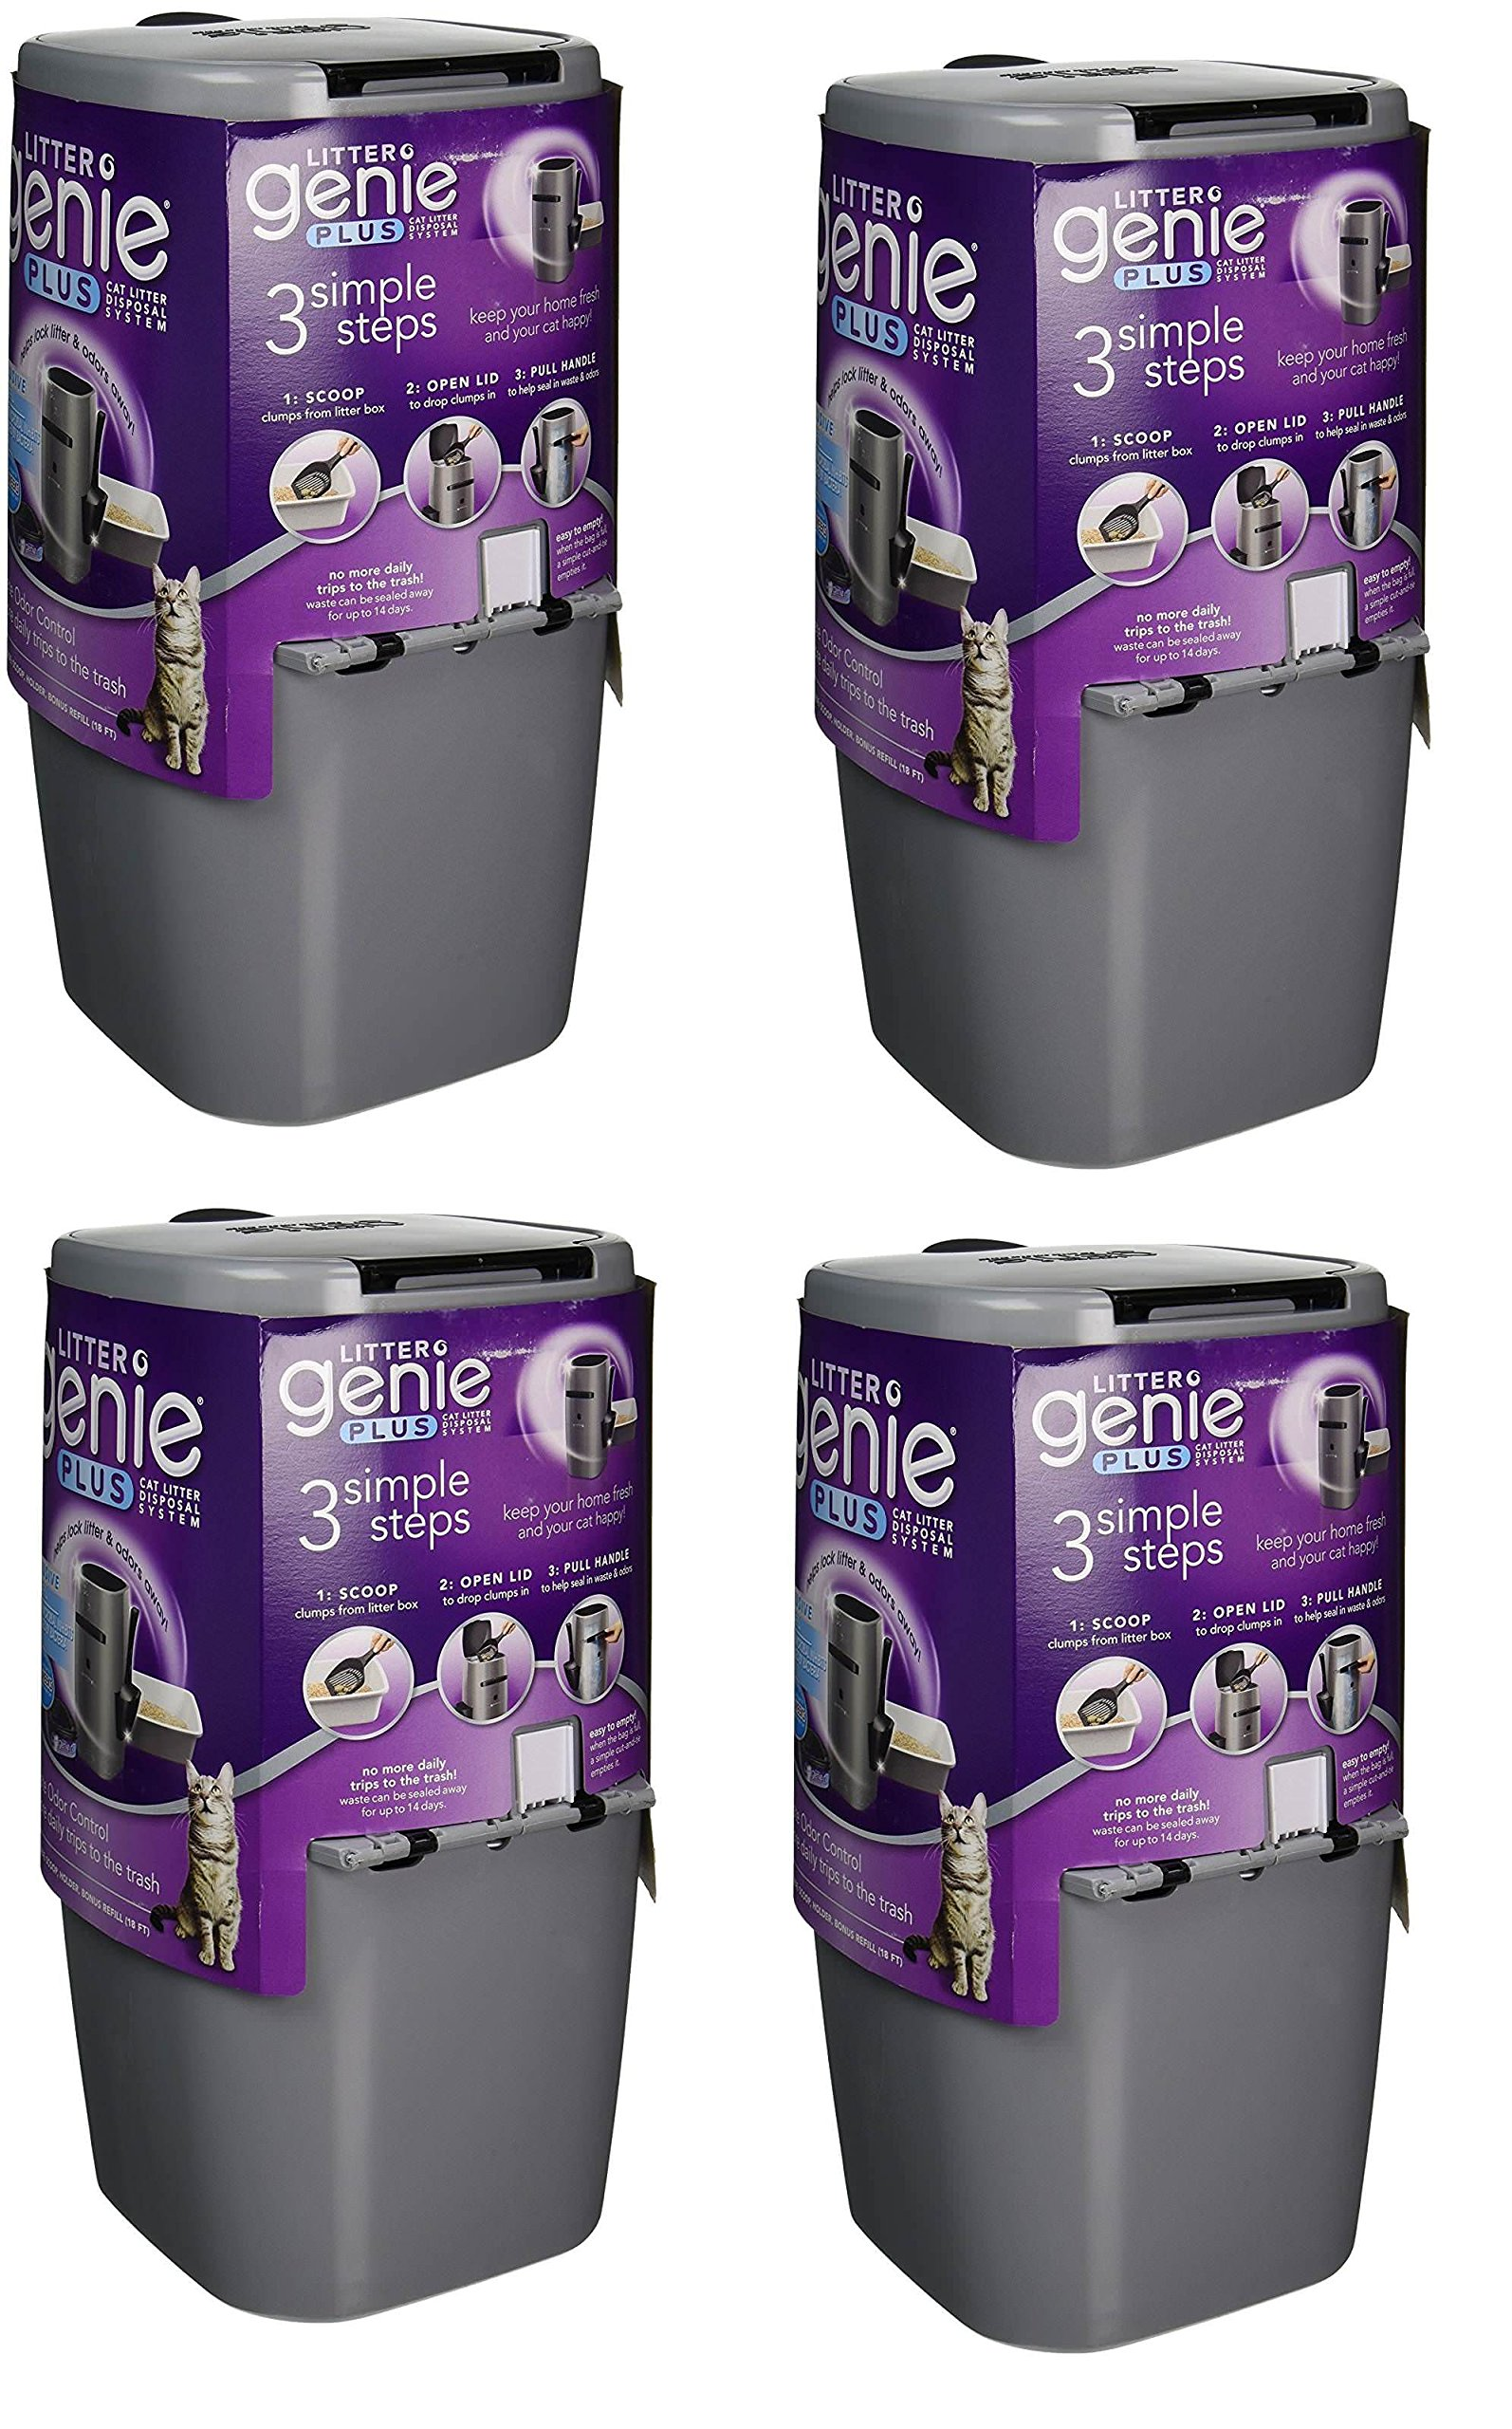 Litter Genie Plus Cat Litter Disposal System Rmrqgq with Odor Free Pail System XiDcmz, 4 Pack(Silver)